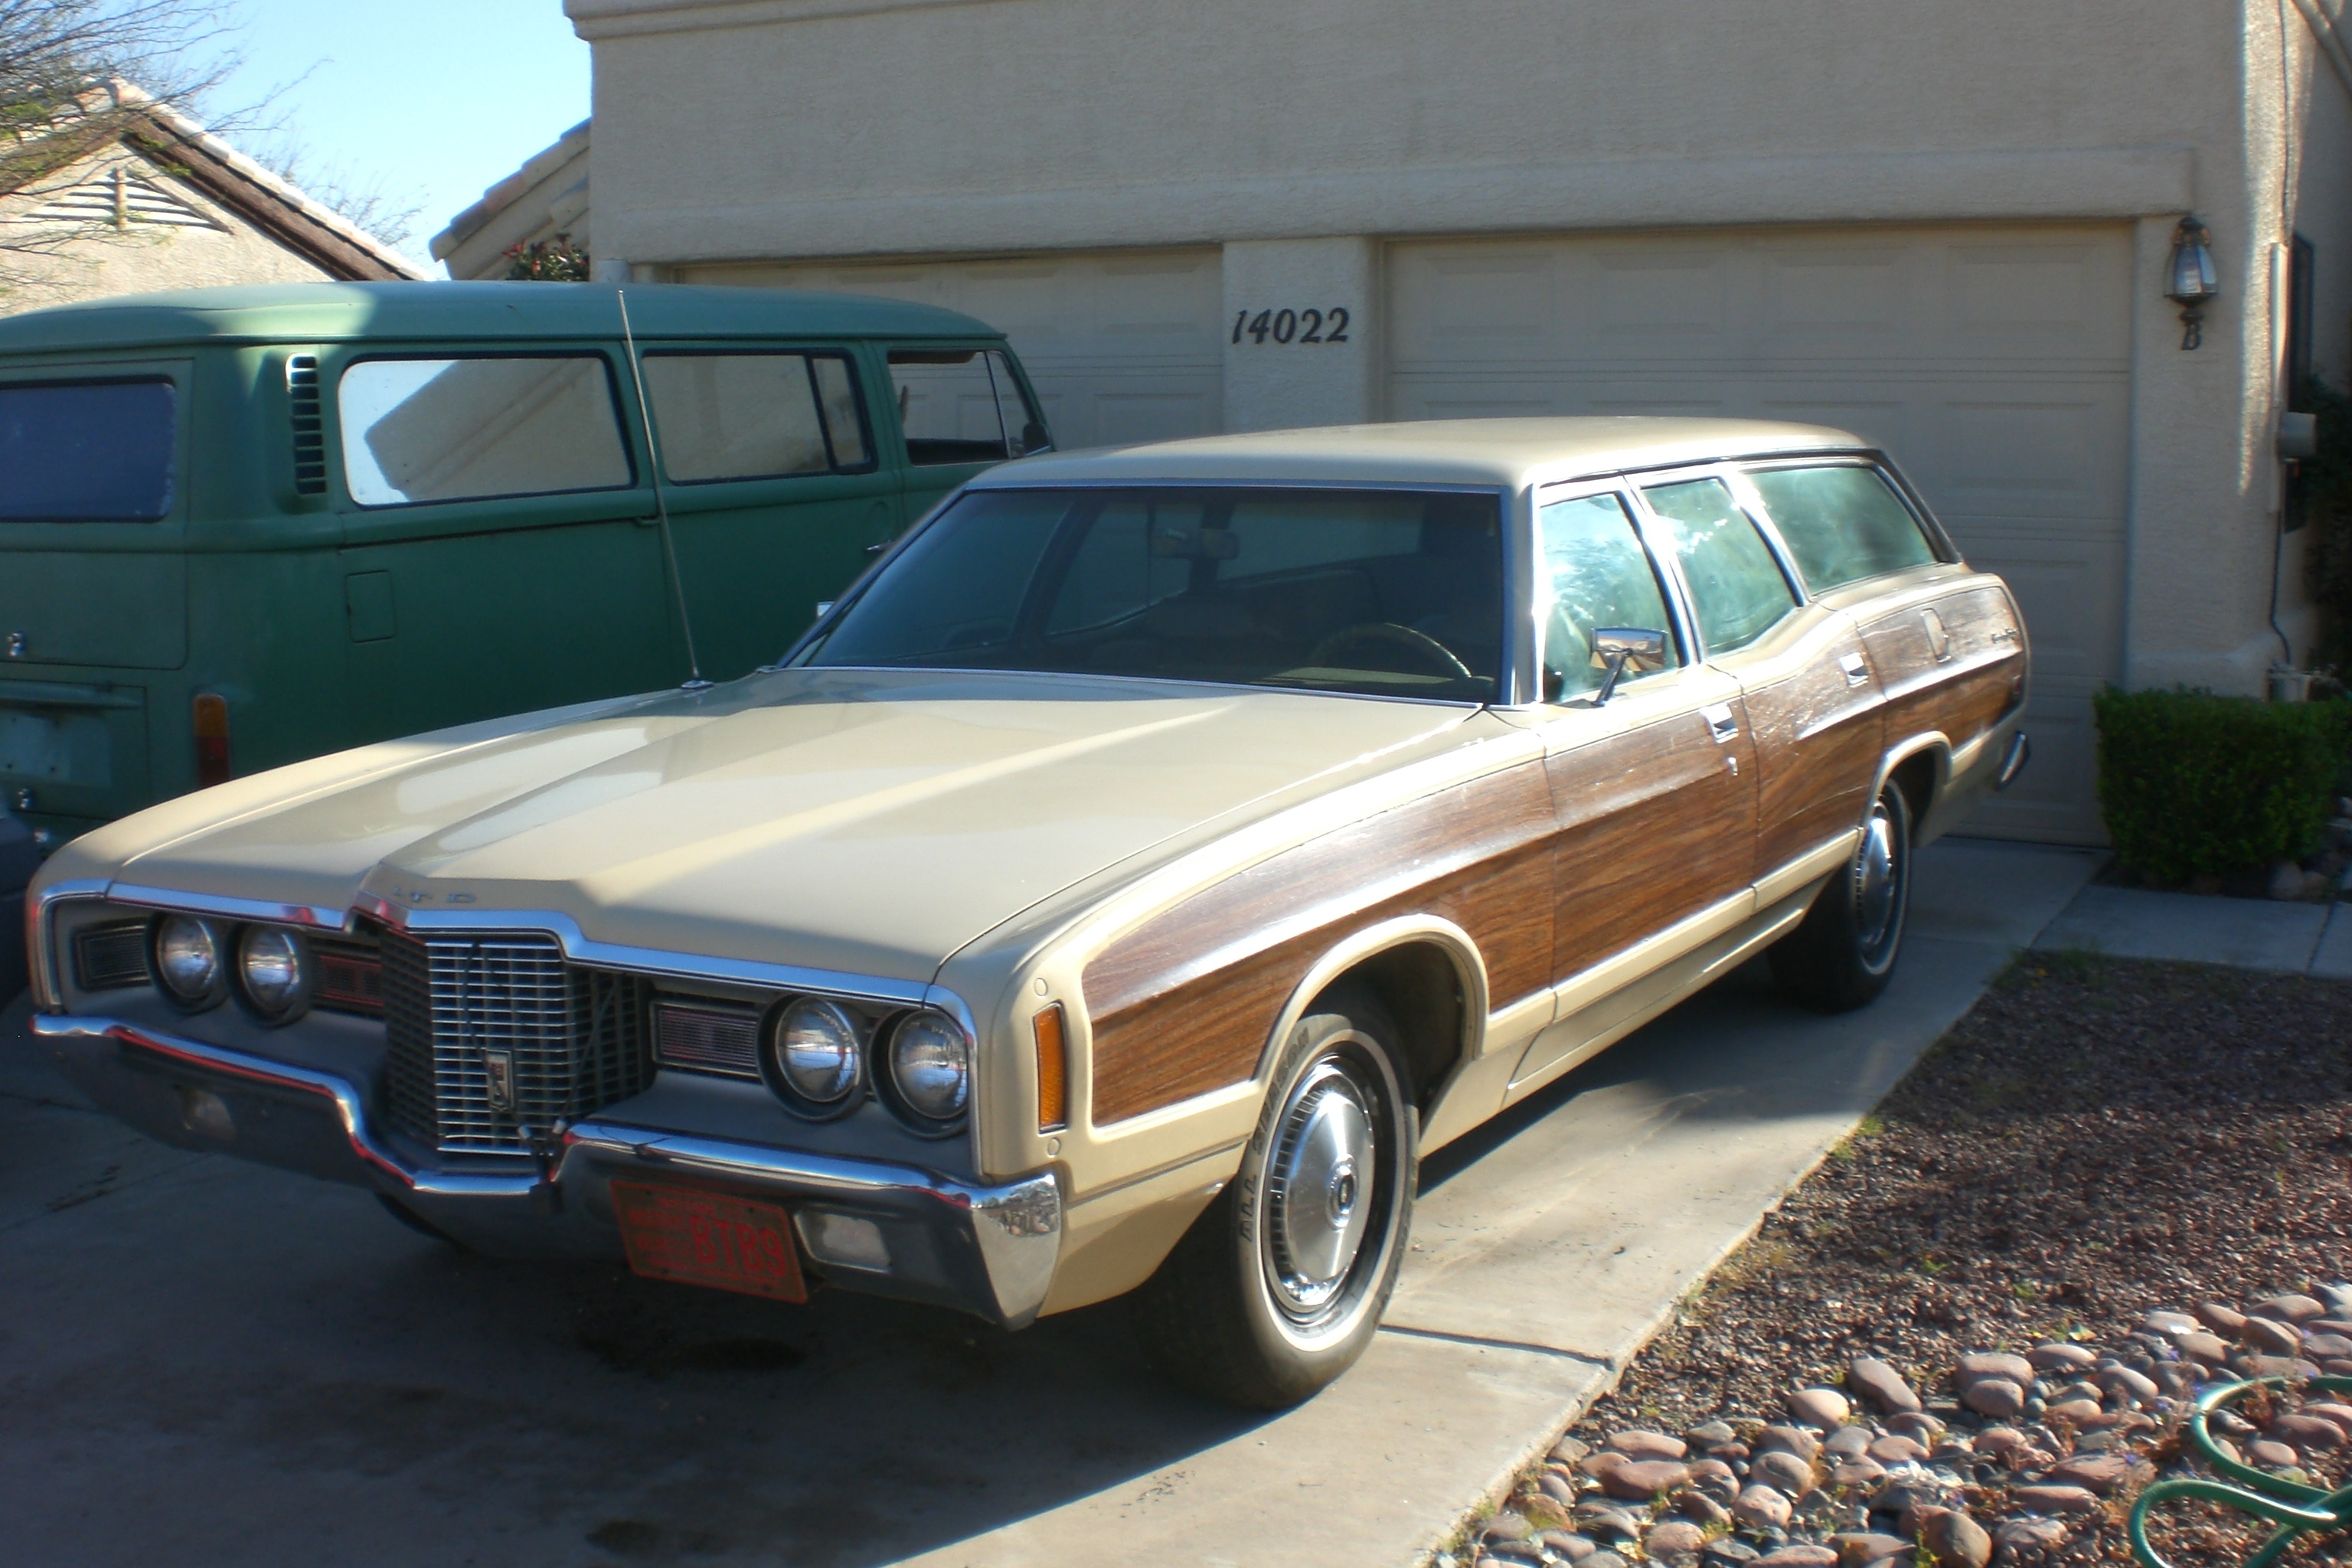 1972 Ford Ltd For Sale >> wlgilmore 1971 Ford LTD Country Squire Specs, Photos, Modification Info at CarDomain